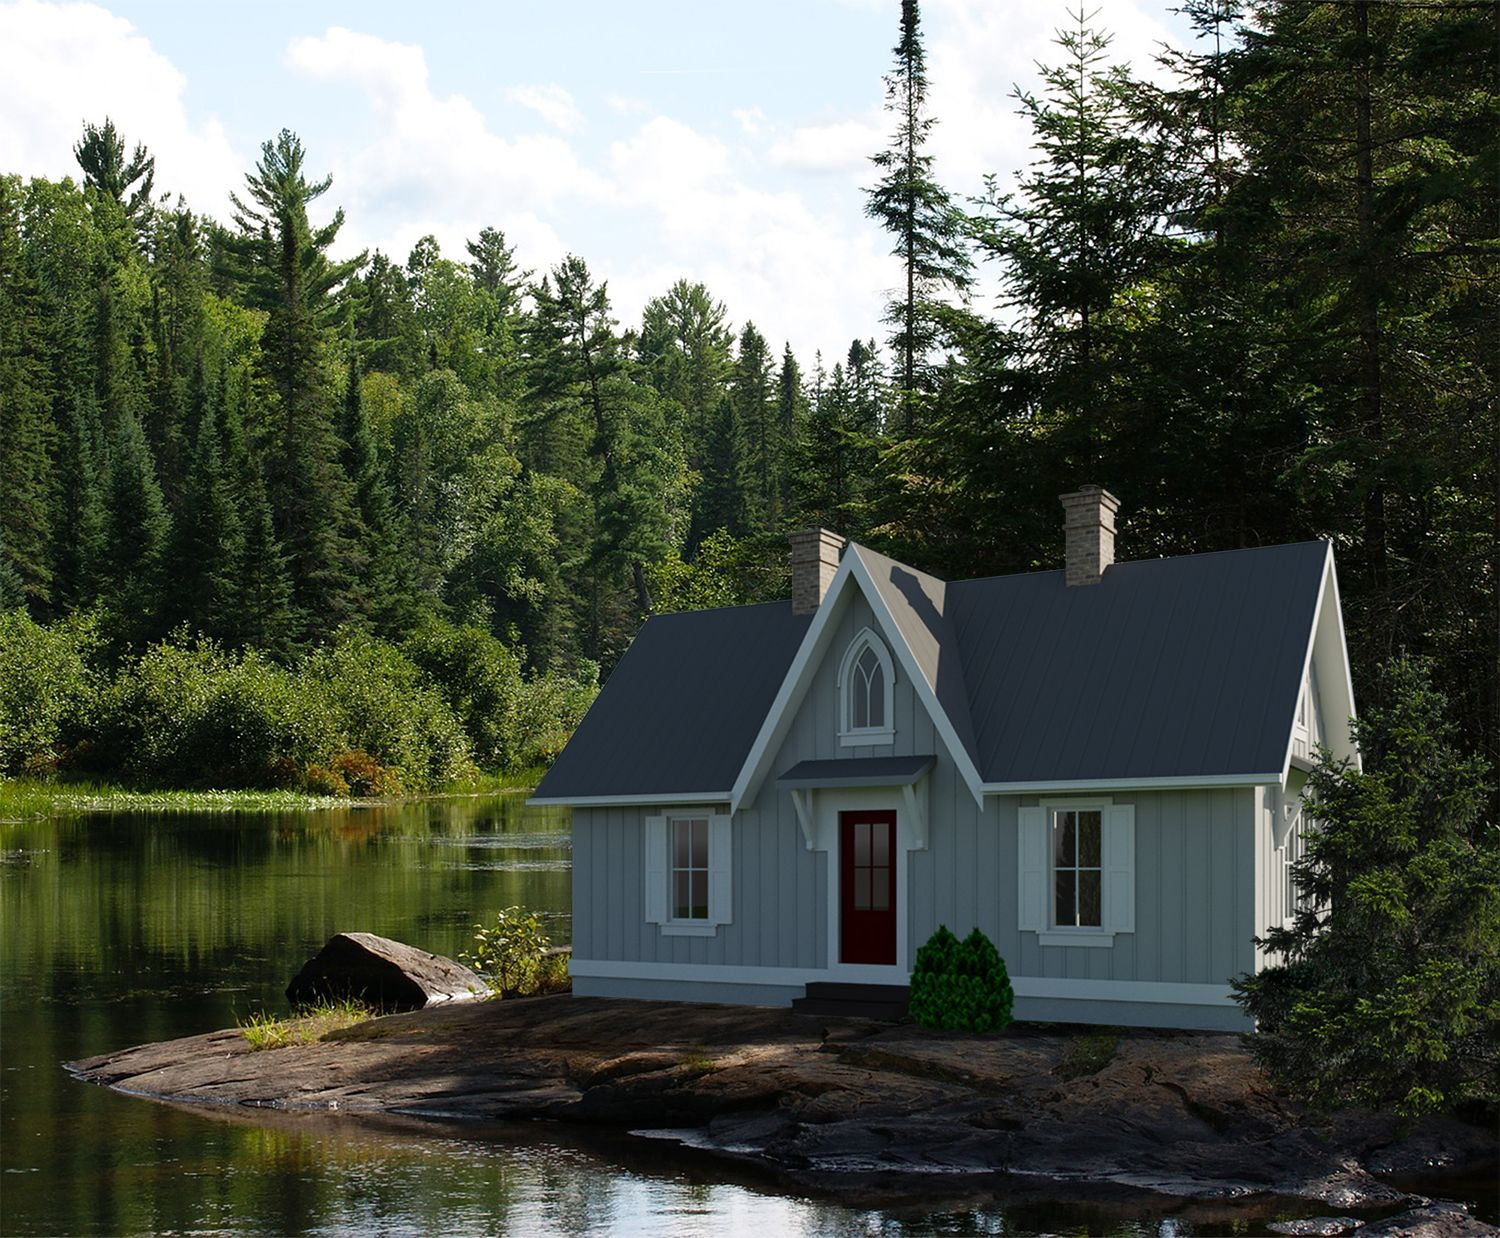 Ontario-504 - Robinson Plans | Small cottages, Small house plans, Tiny  house plan